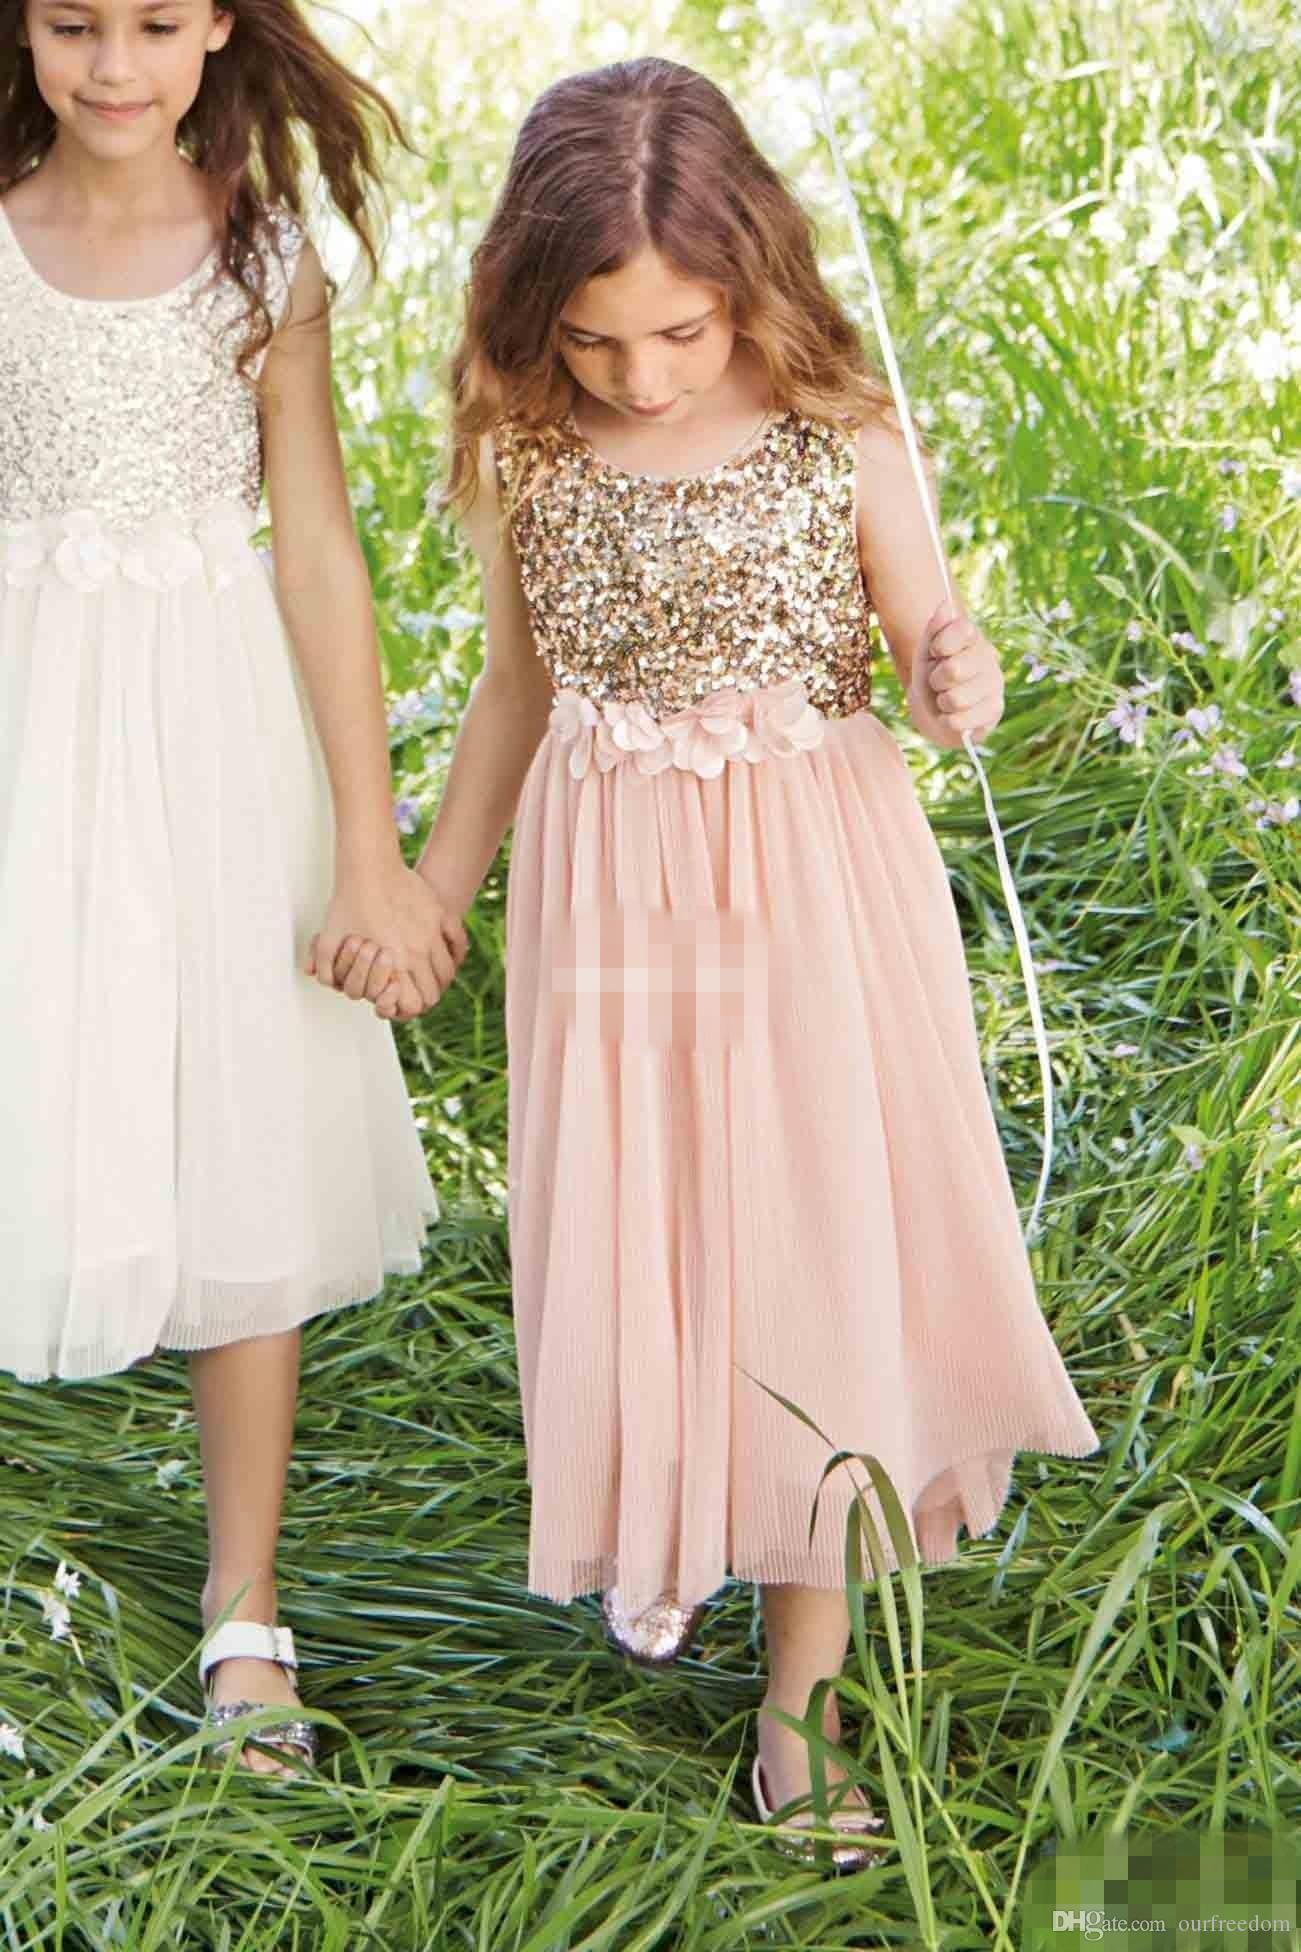 Blush Flower Girls Dresses Lentejuelas doradas Hecho a mano Sash Flor Longitud Tulle Jewel A Line Niños Vestido formal Vestido de dama de honor junior